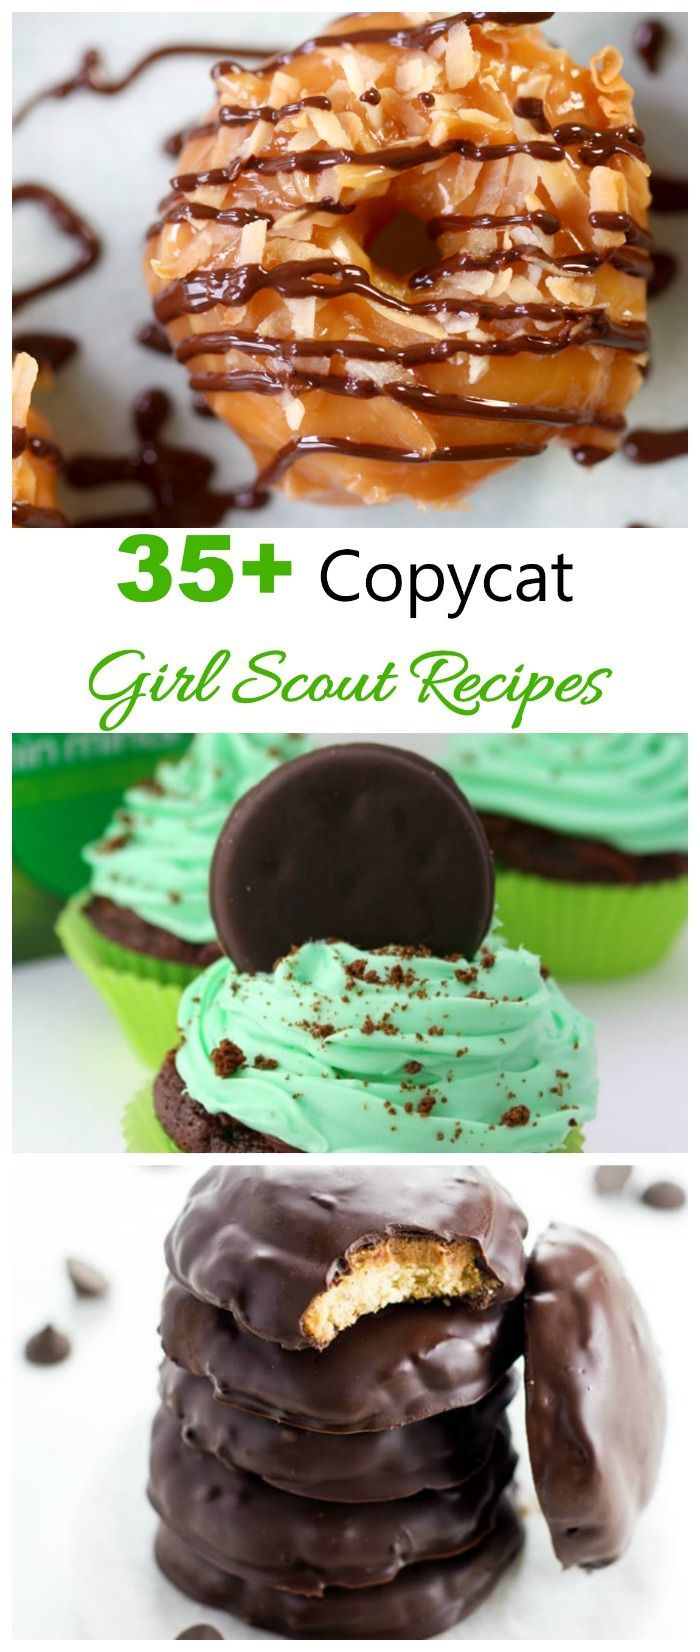 These copycat Girl Scout Recipes give you the flavors of your Favorite Girl Scout Cookie in a home made version. #girlscouts #copycatrecipes #girlscoutcookies